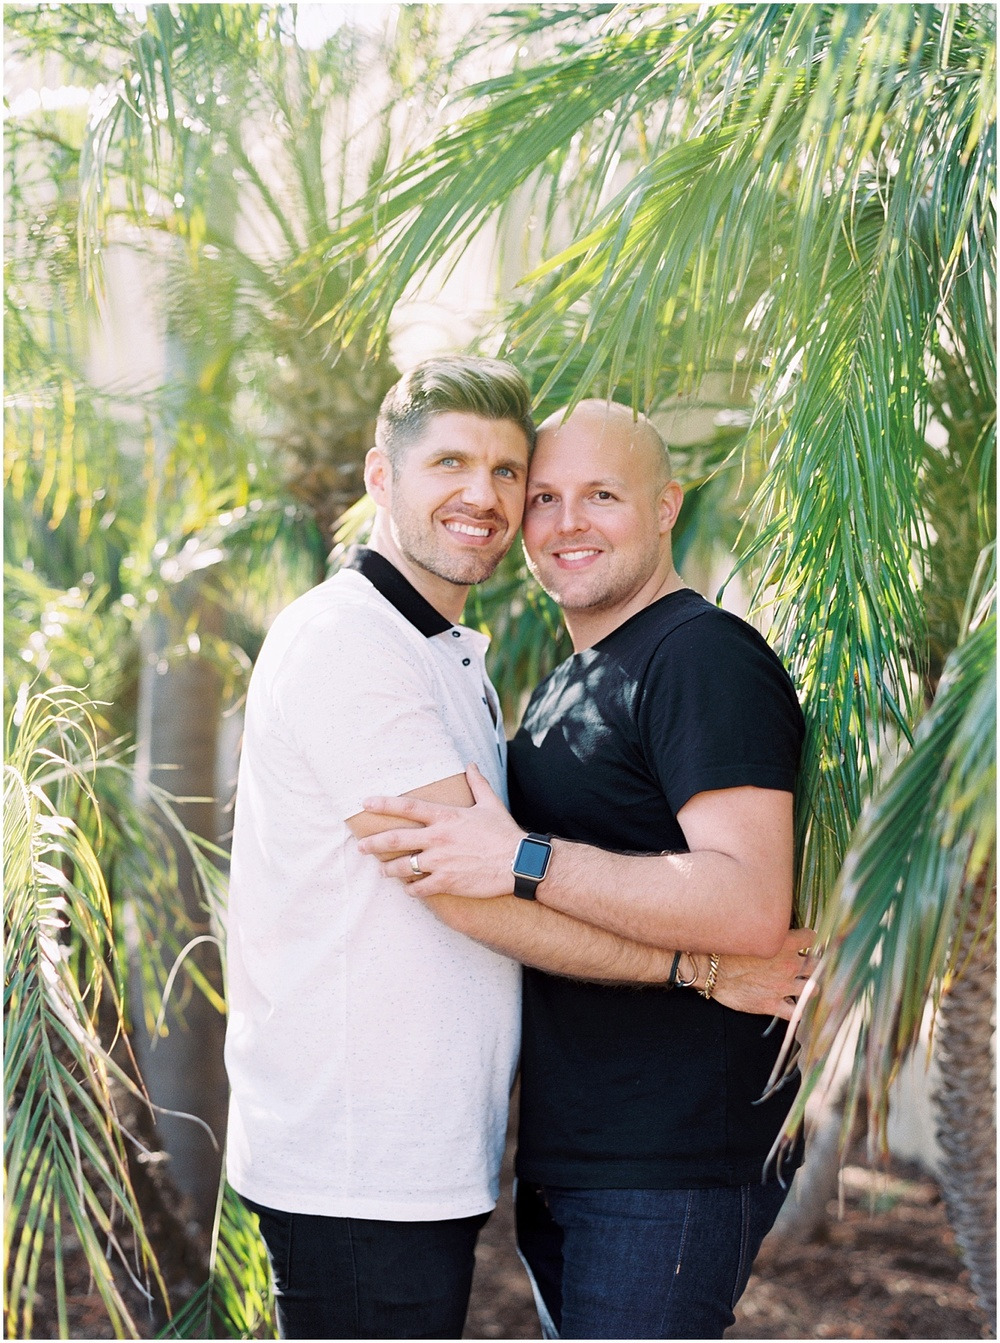 San_Francisco_Same_Sex_Wedding_photographer-13.jpg